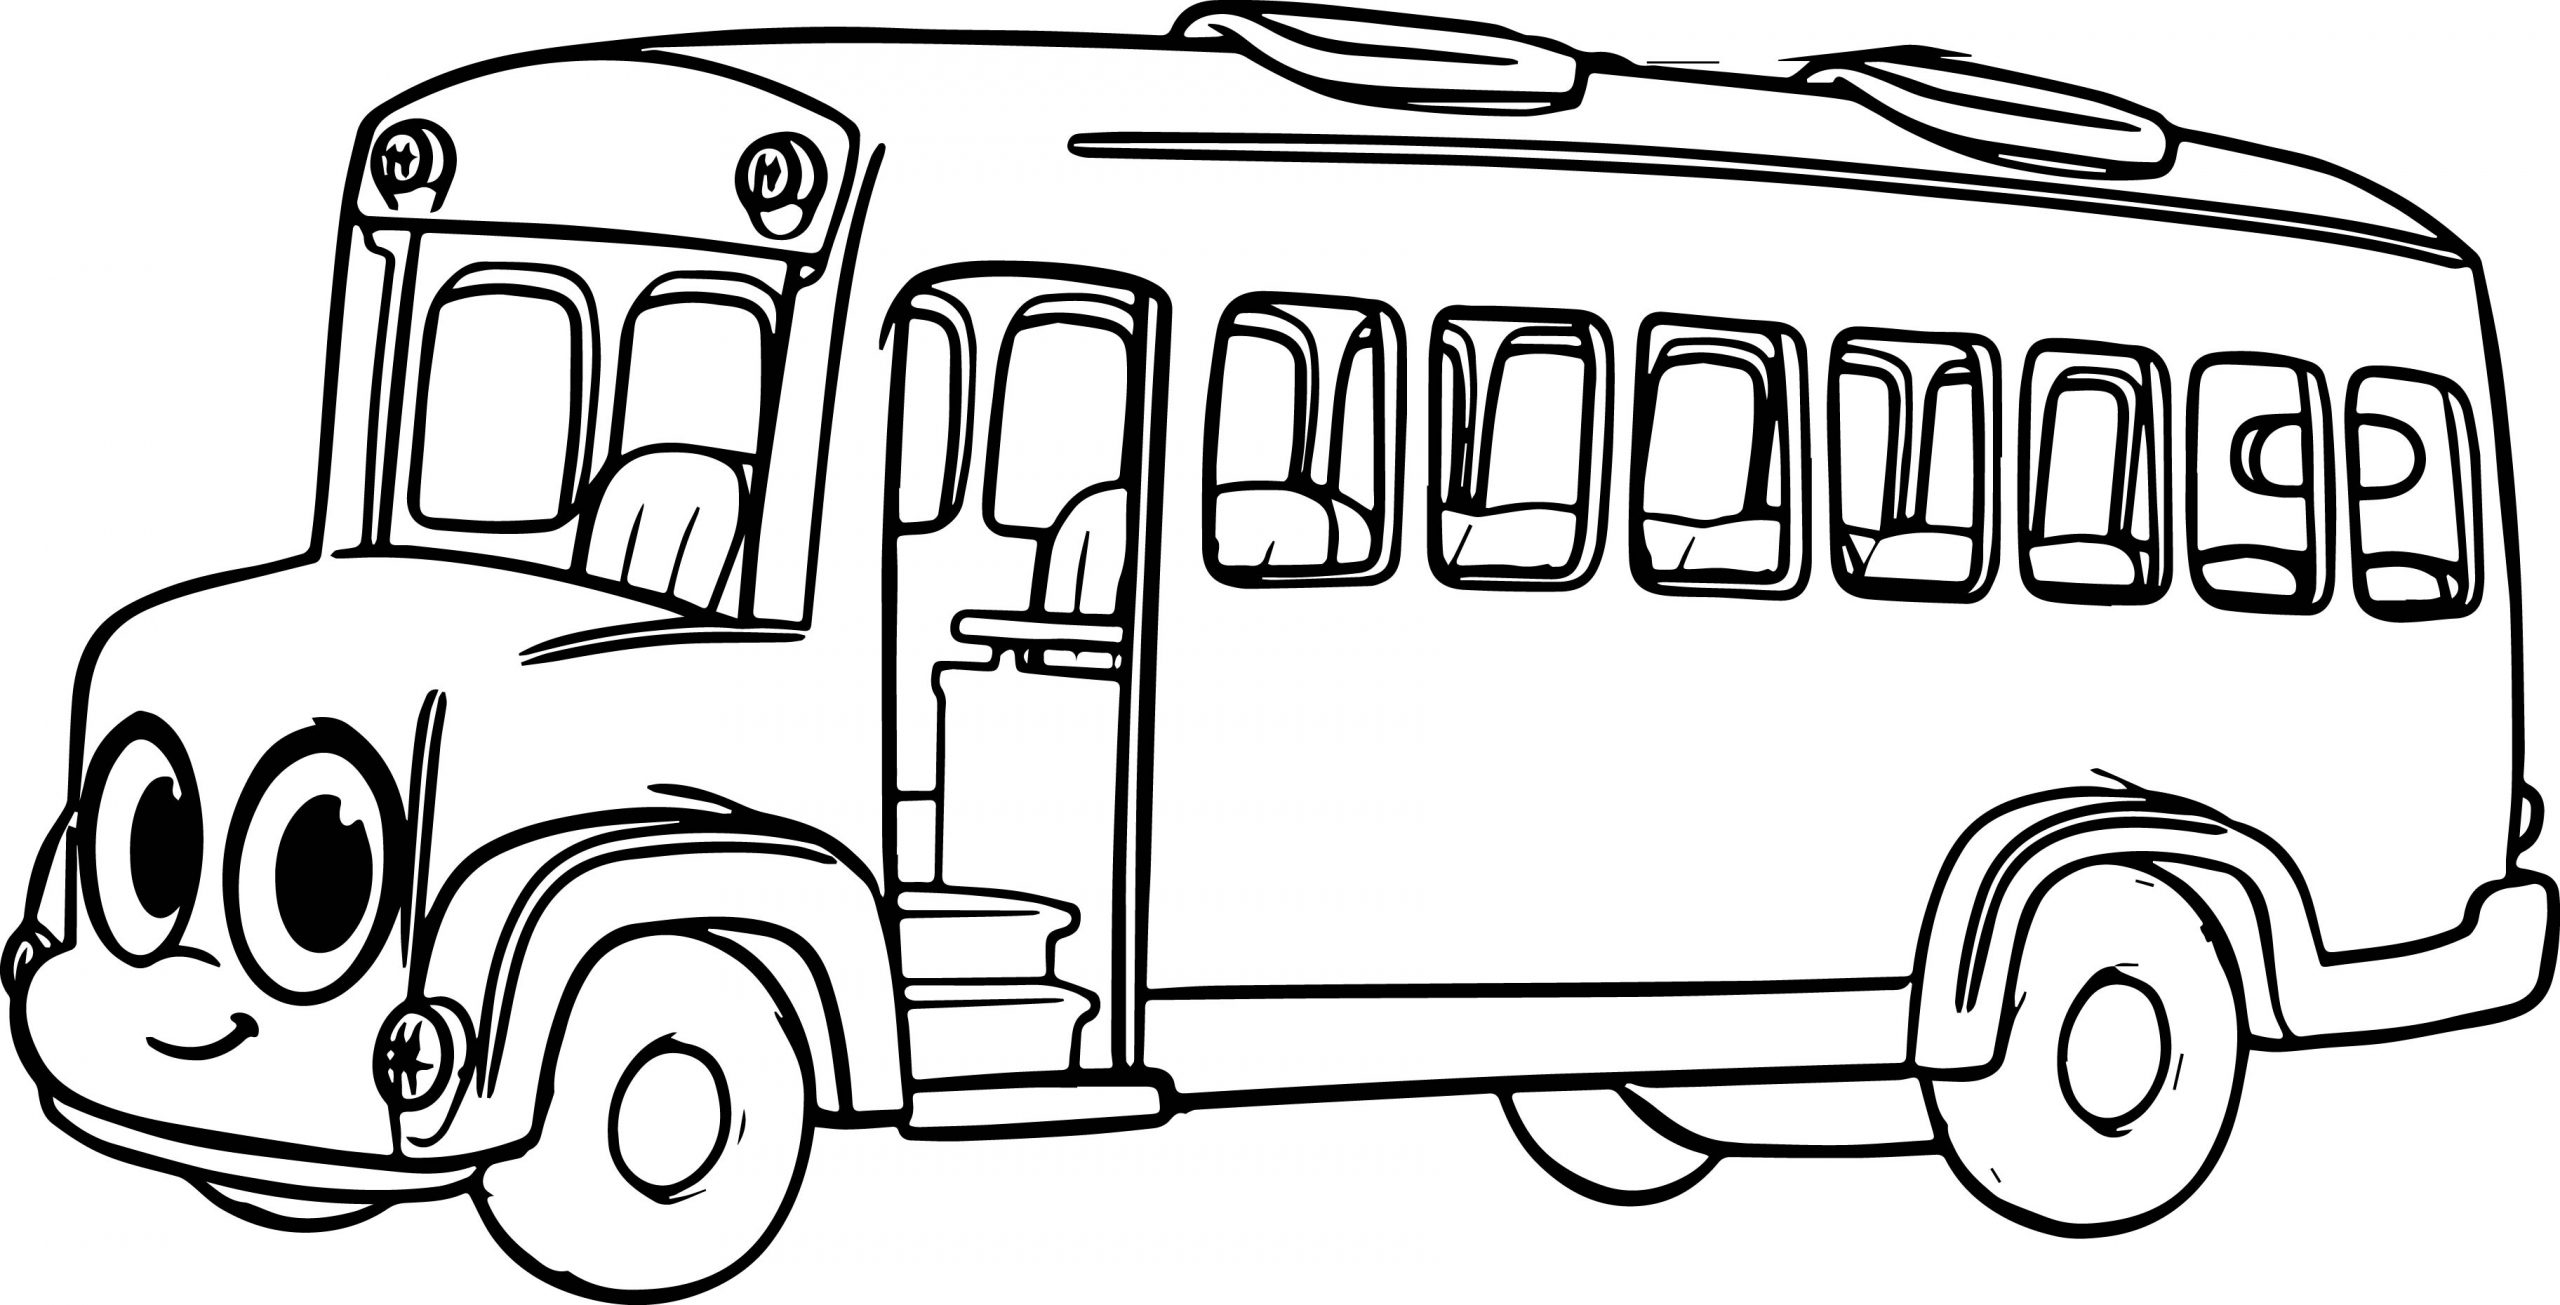 City Bus Coloring Page At Getcolorings | Free intérieur Dessin Bus